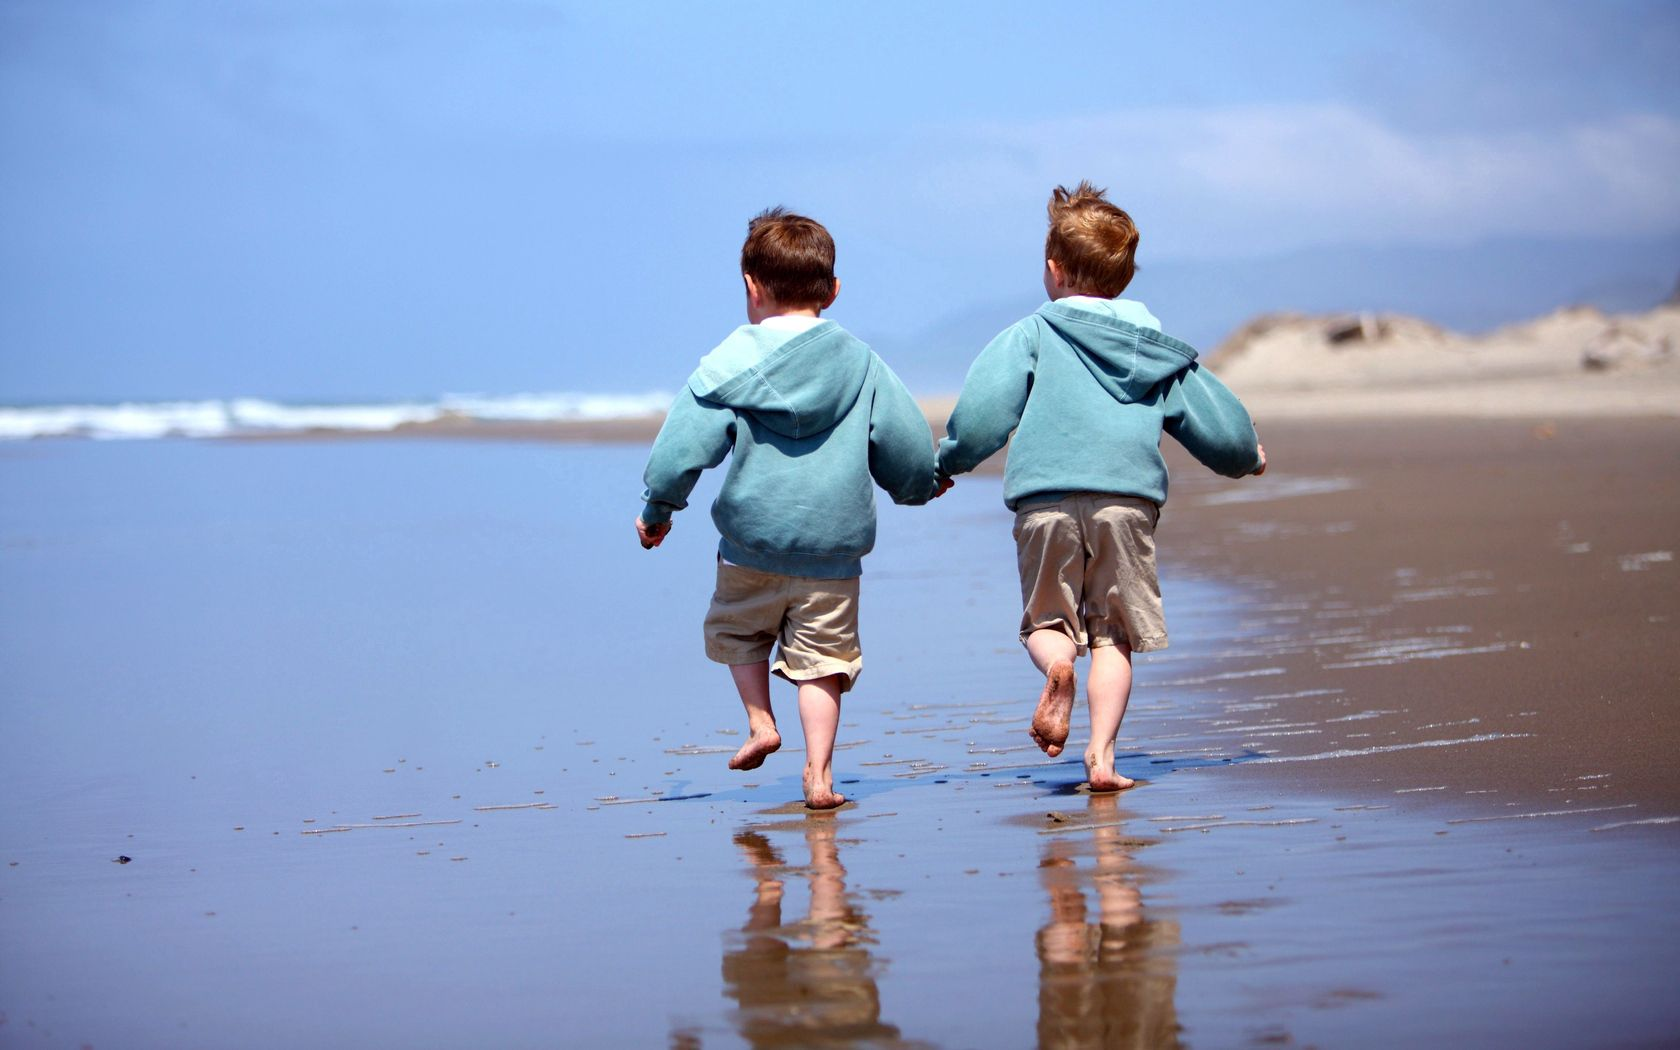 67555 Screensavers and Wallpapers Children for phone. Download Miscellanea, Miscellaneous, Children, Boys, Brothers, Shore, Bank, Sand, Reflection, Coast, Sea, Ocean, Surf, Stroll, Shorts, Heels, Heel, Horizon, Sky pictures for free